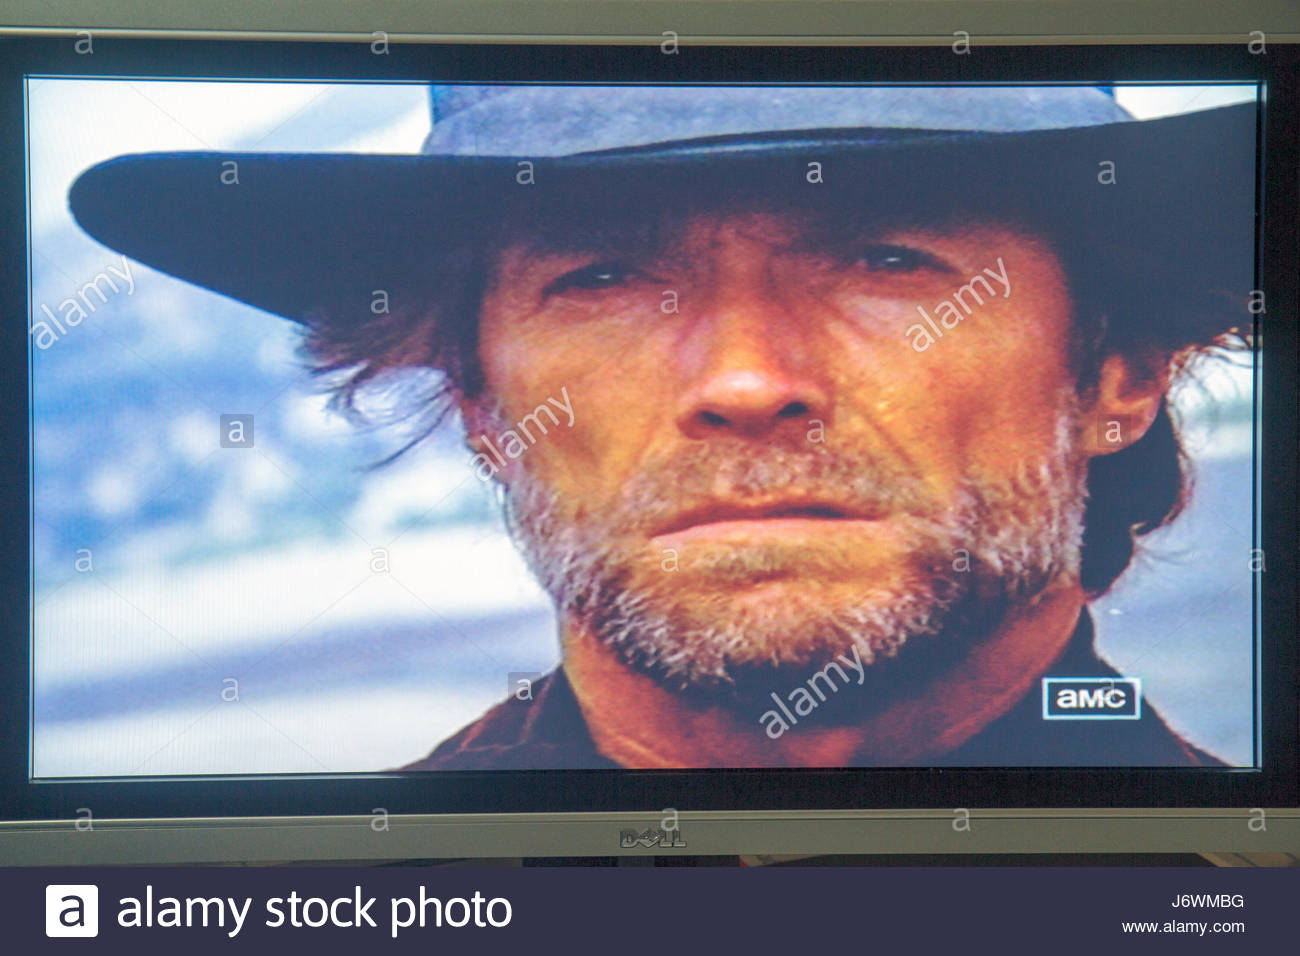 Miami Beach Florida television TV flat panel screen monitor cable channel AMC Clint Eastwood - Stock Image